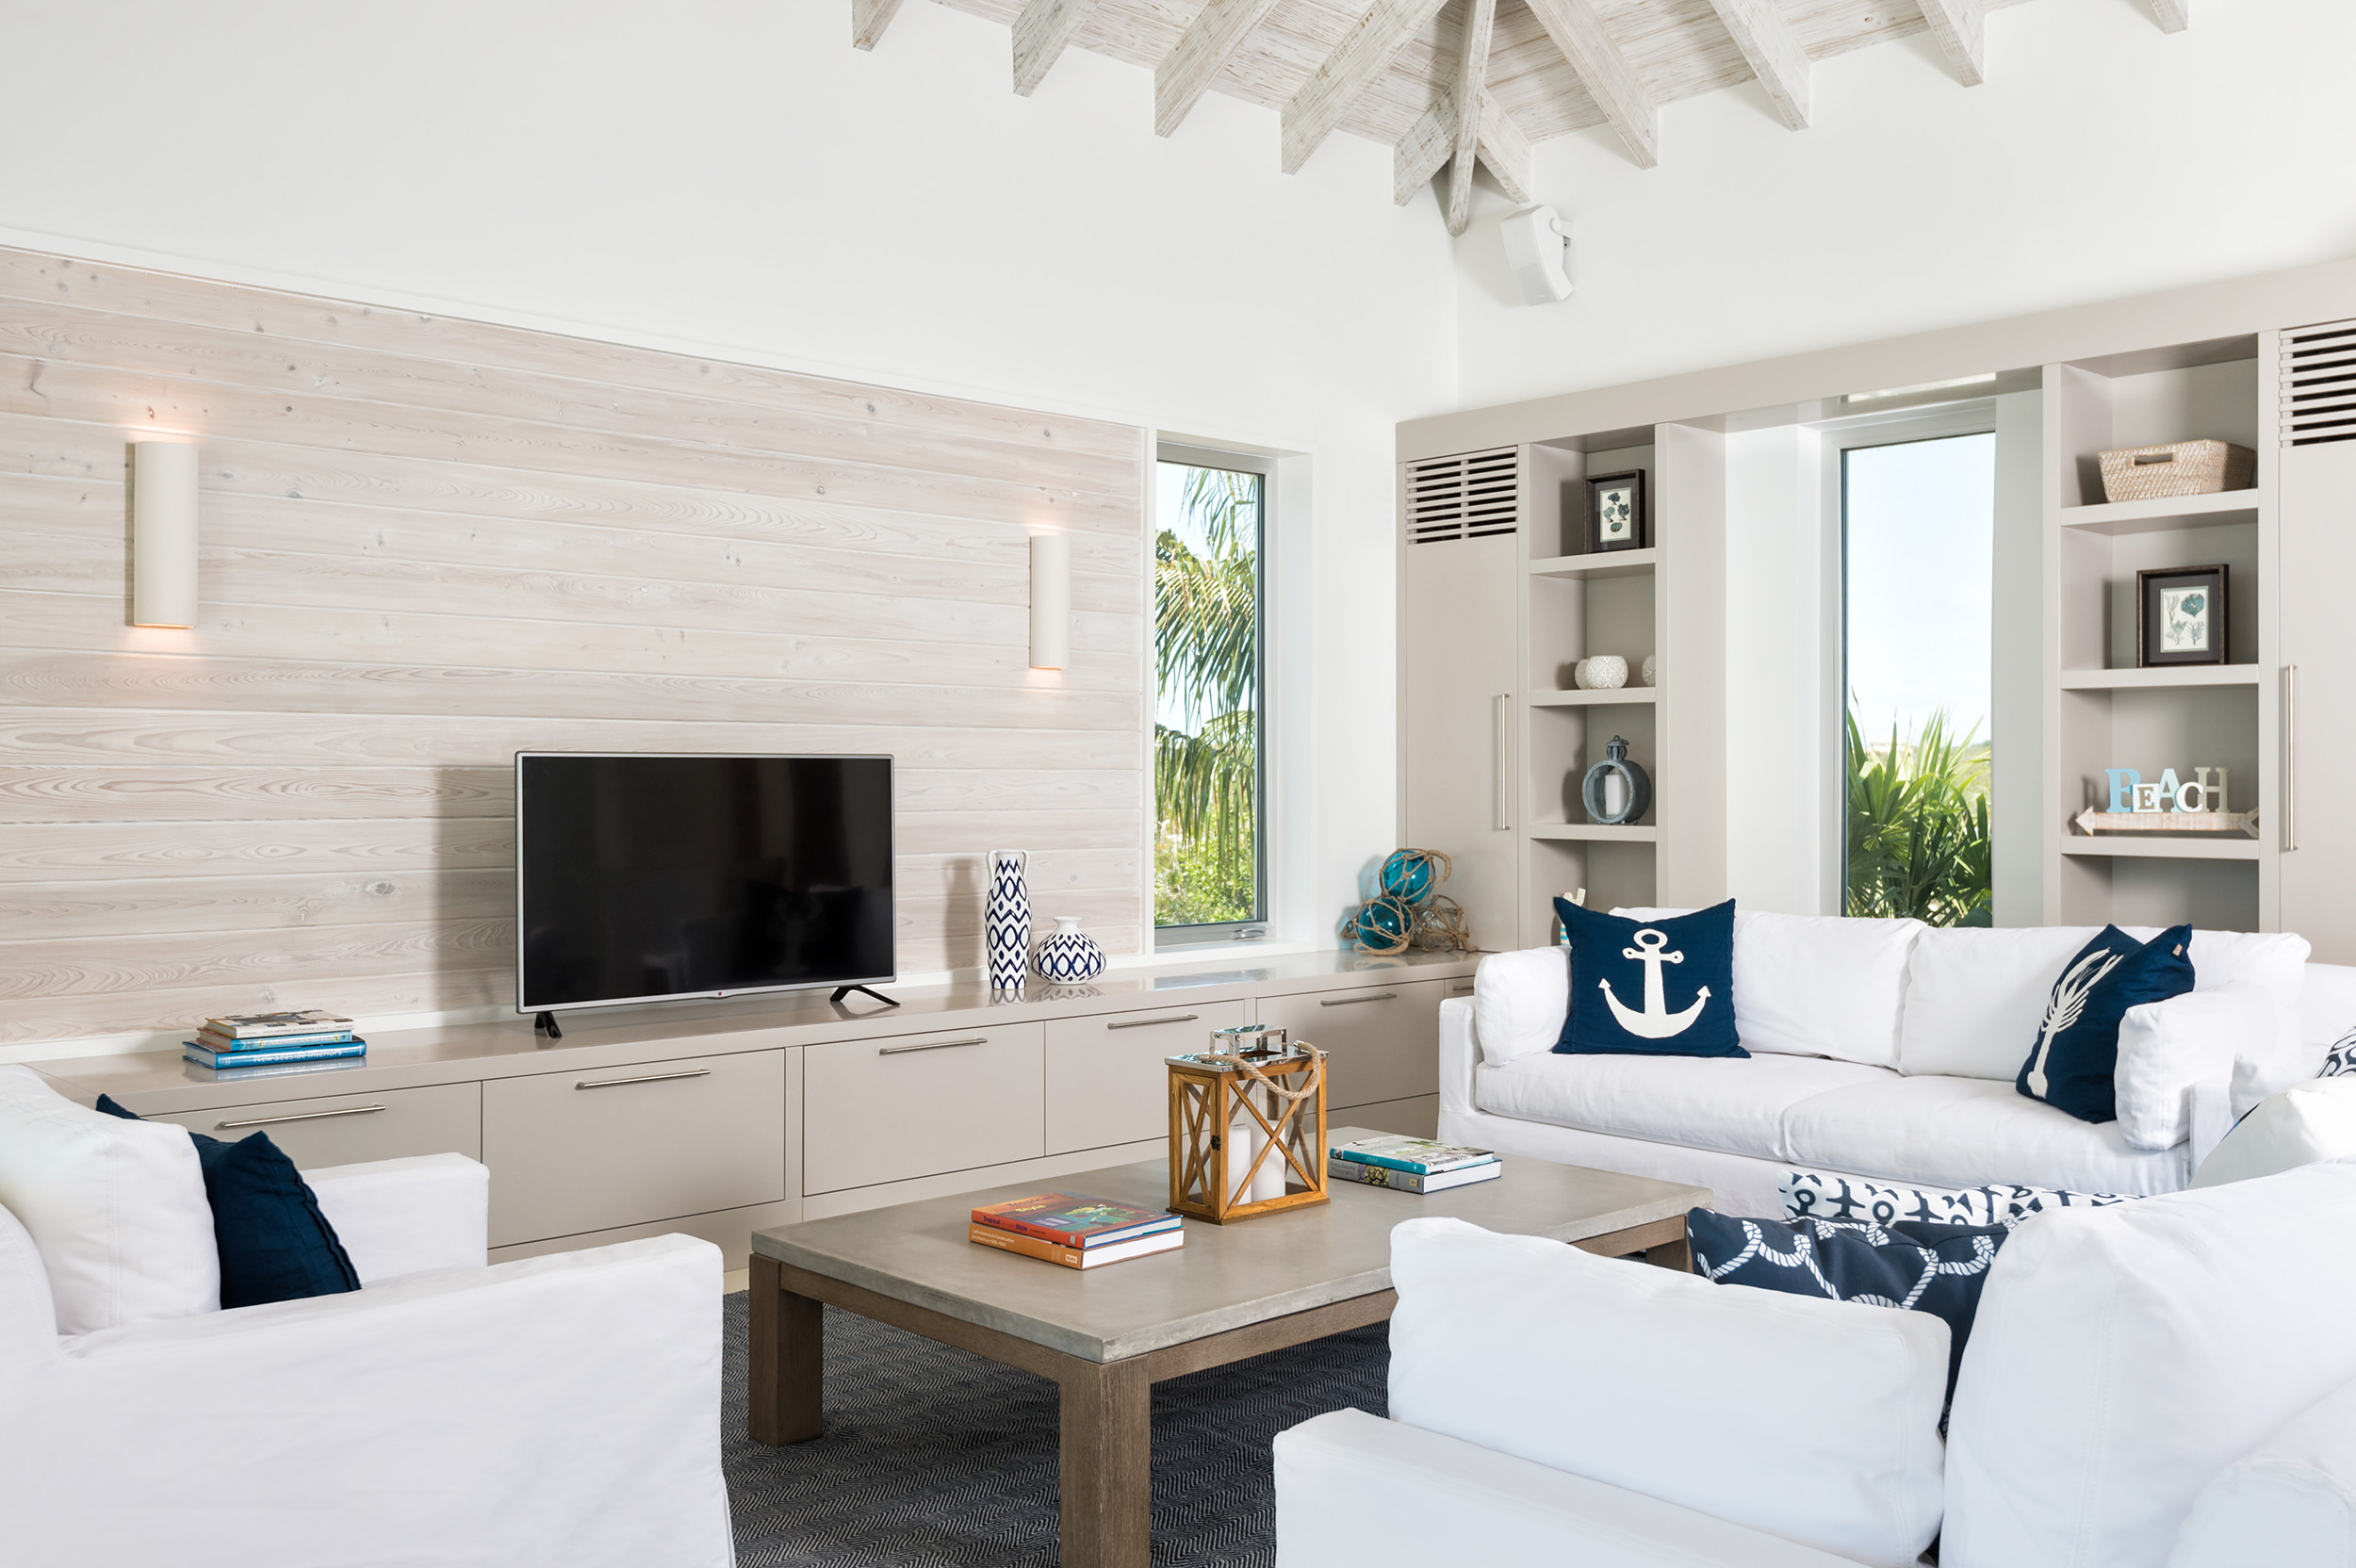 Villa Aguaribay - view of the open plan living area